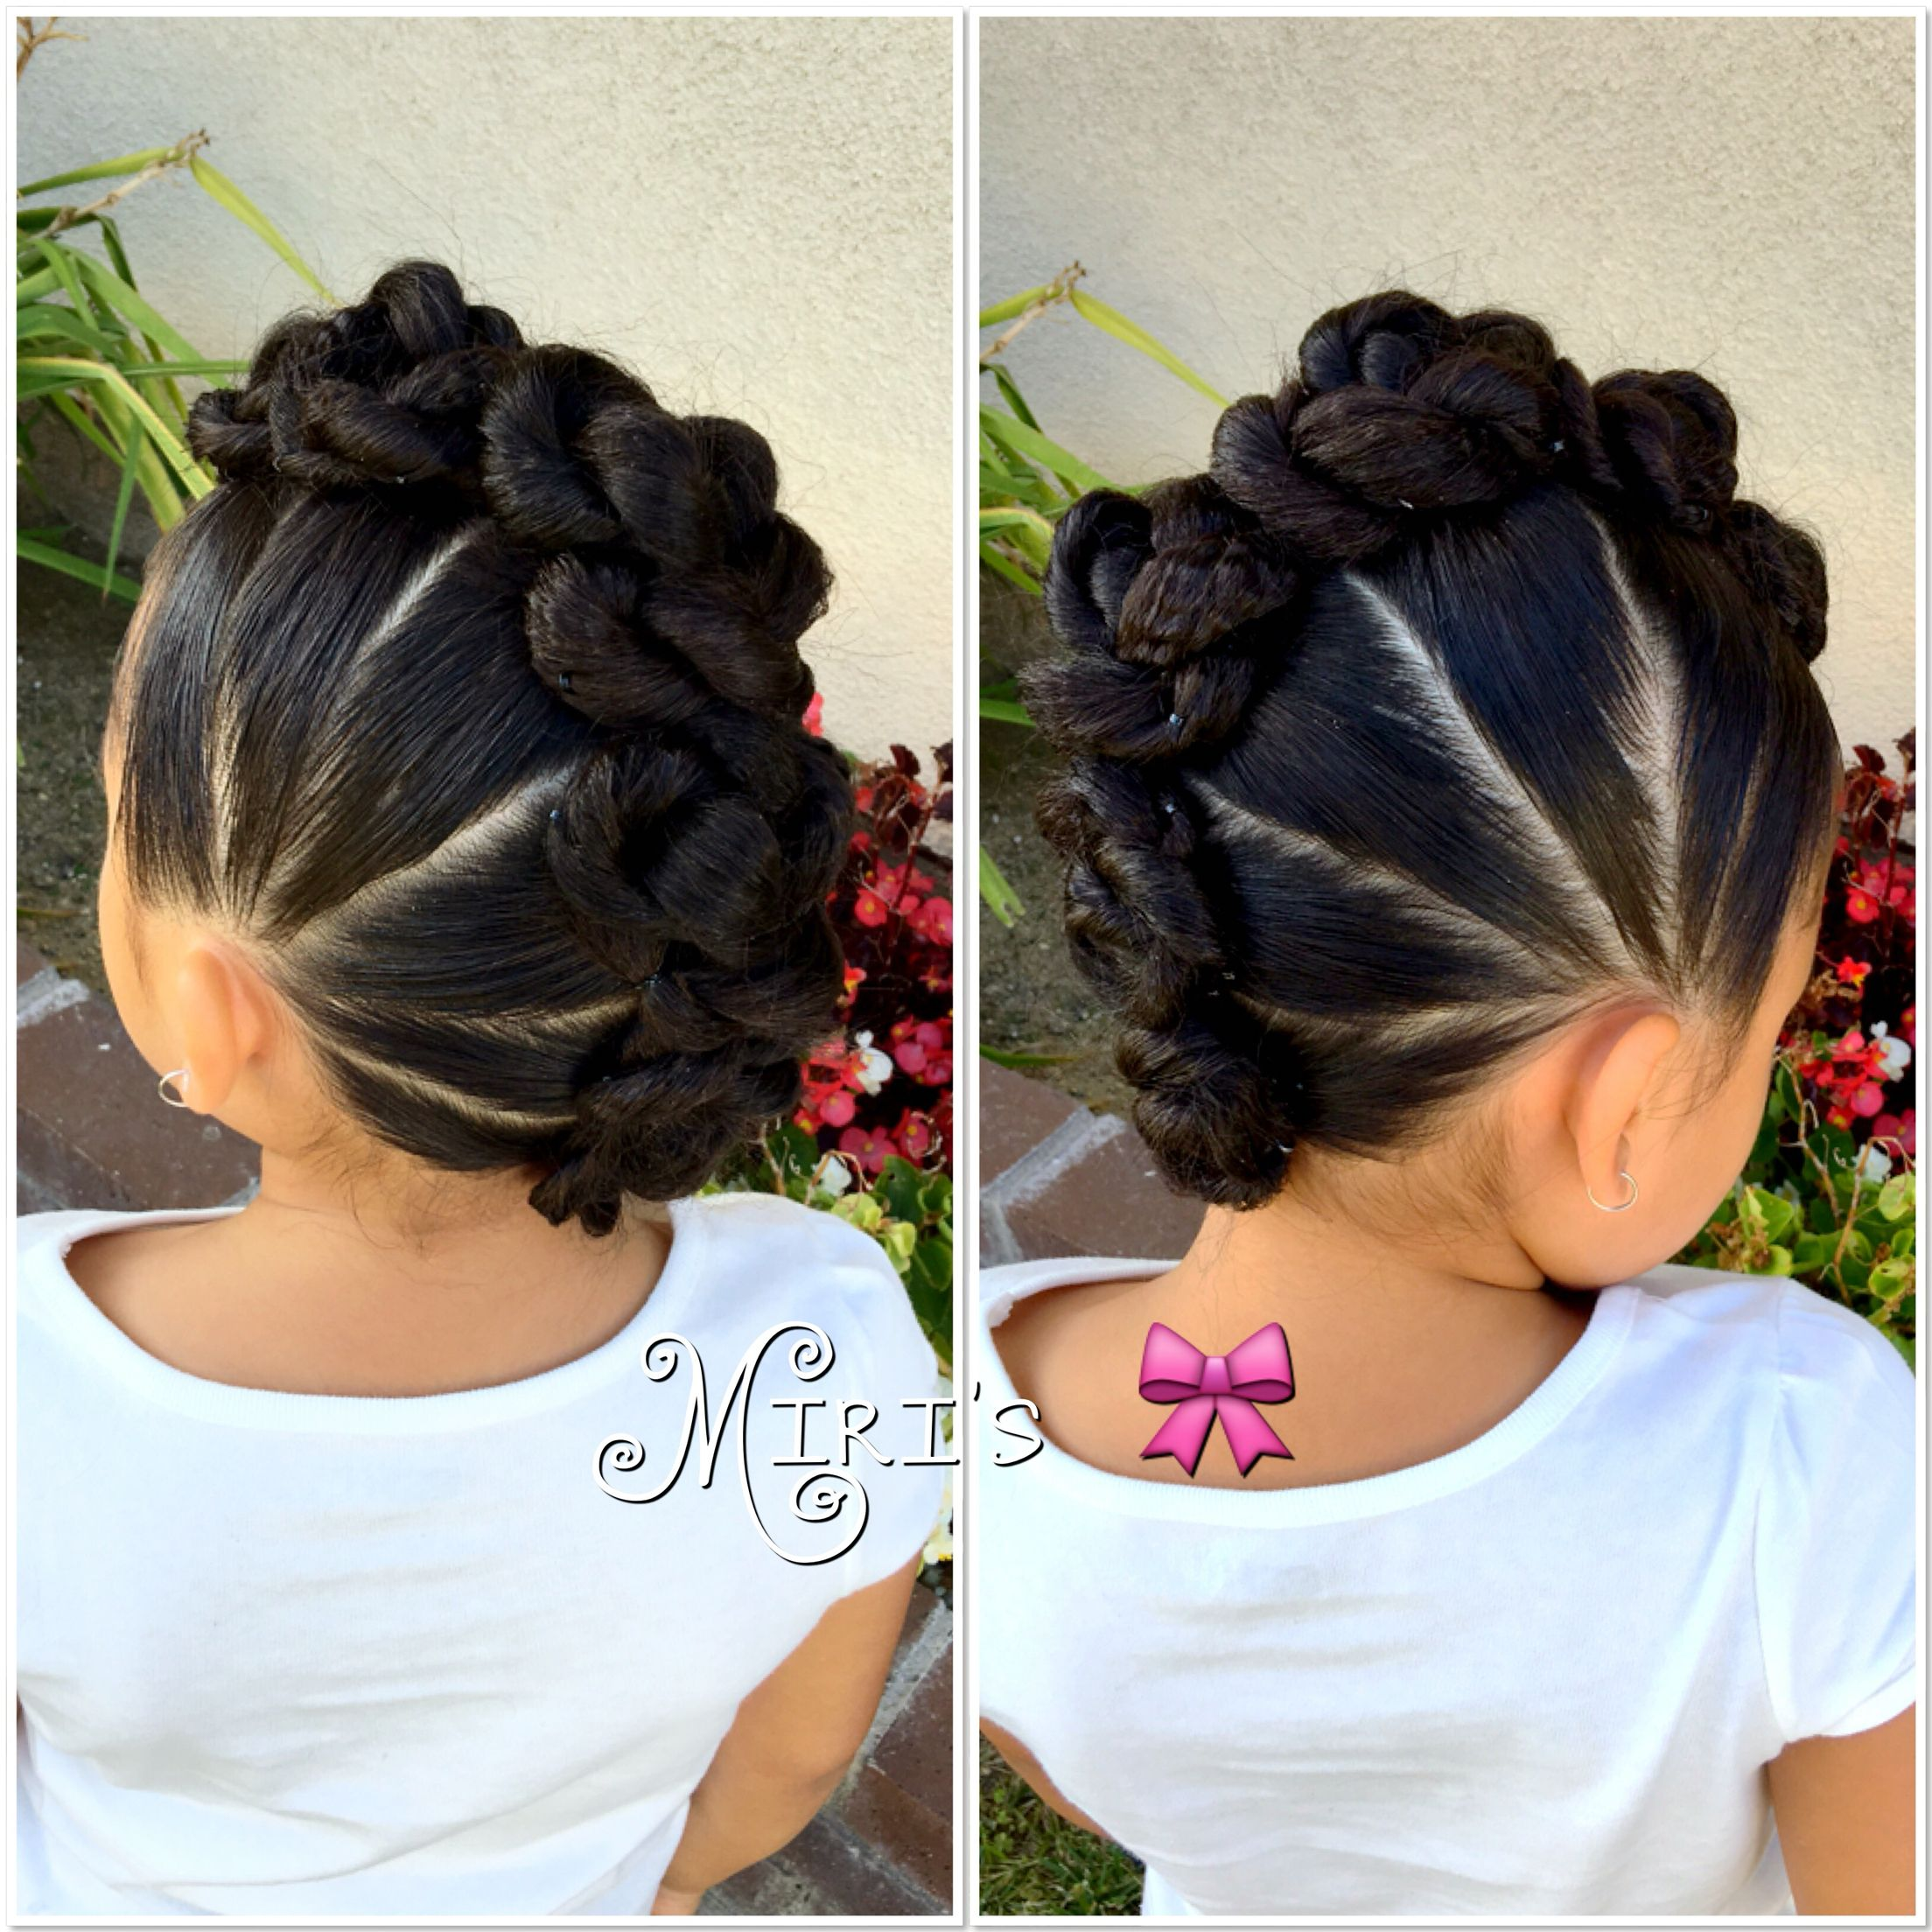 Mohawk With Twists Hair Style For Little Girls Baby Girl Hairstyles Natural Hairstyles For Kids Natural Hair Styles